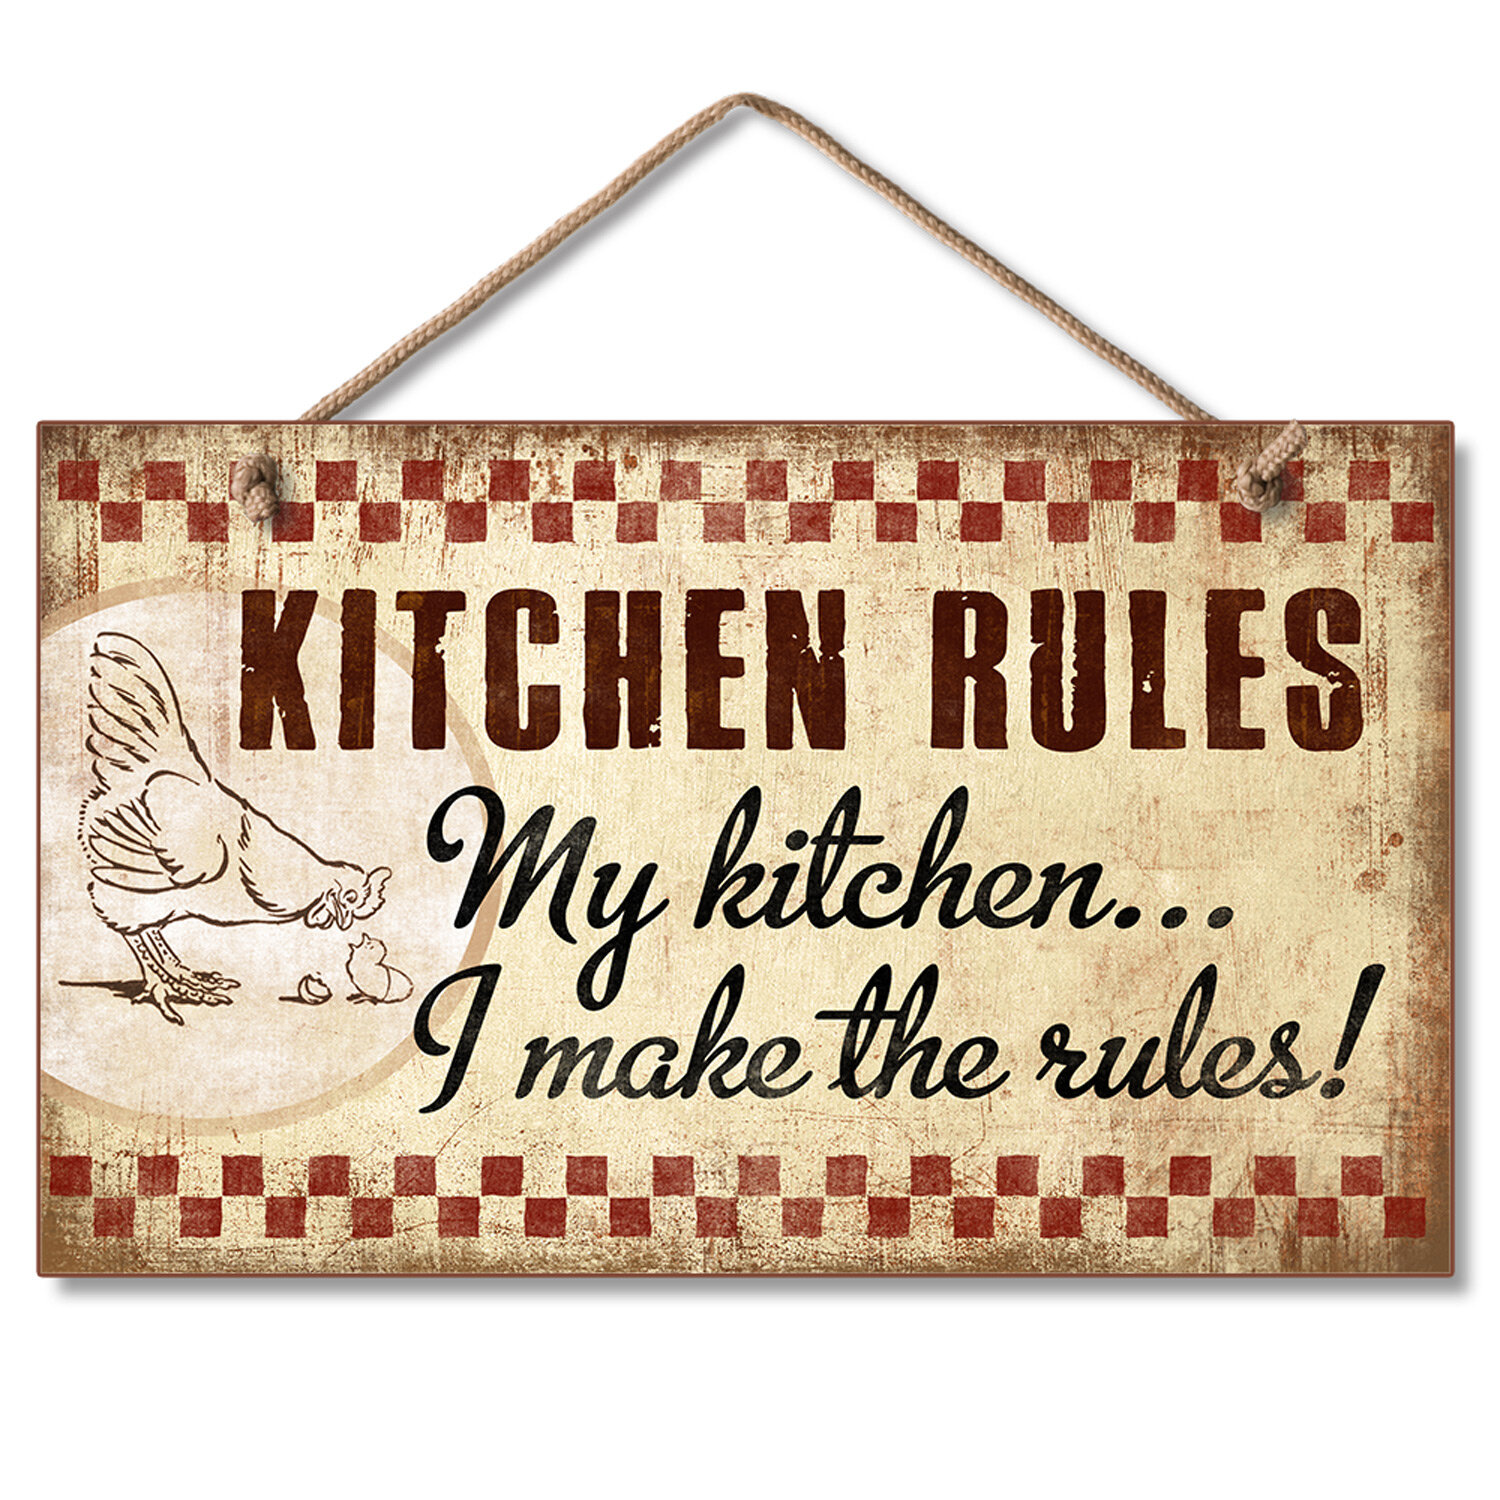 August grove kitchen rules hanging handcrafted wood sign wall décor wayfair